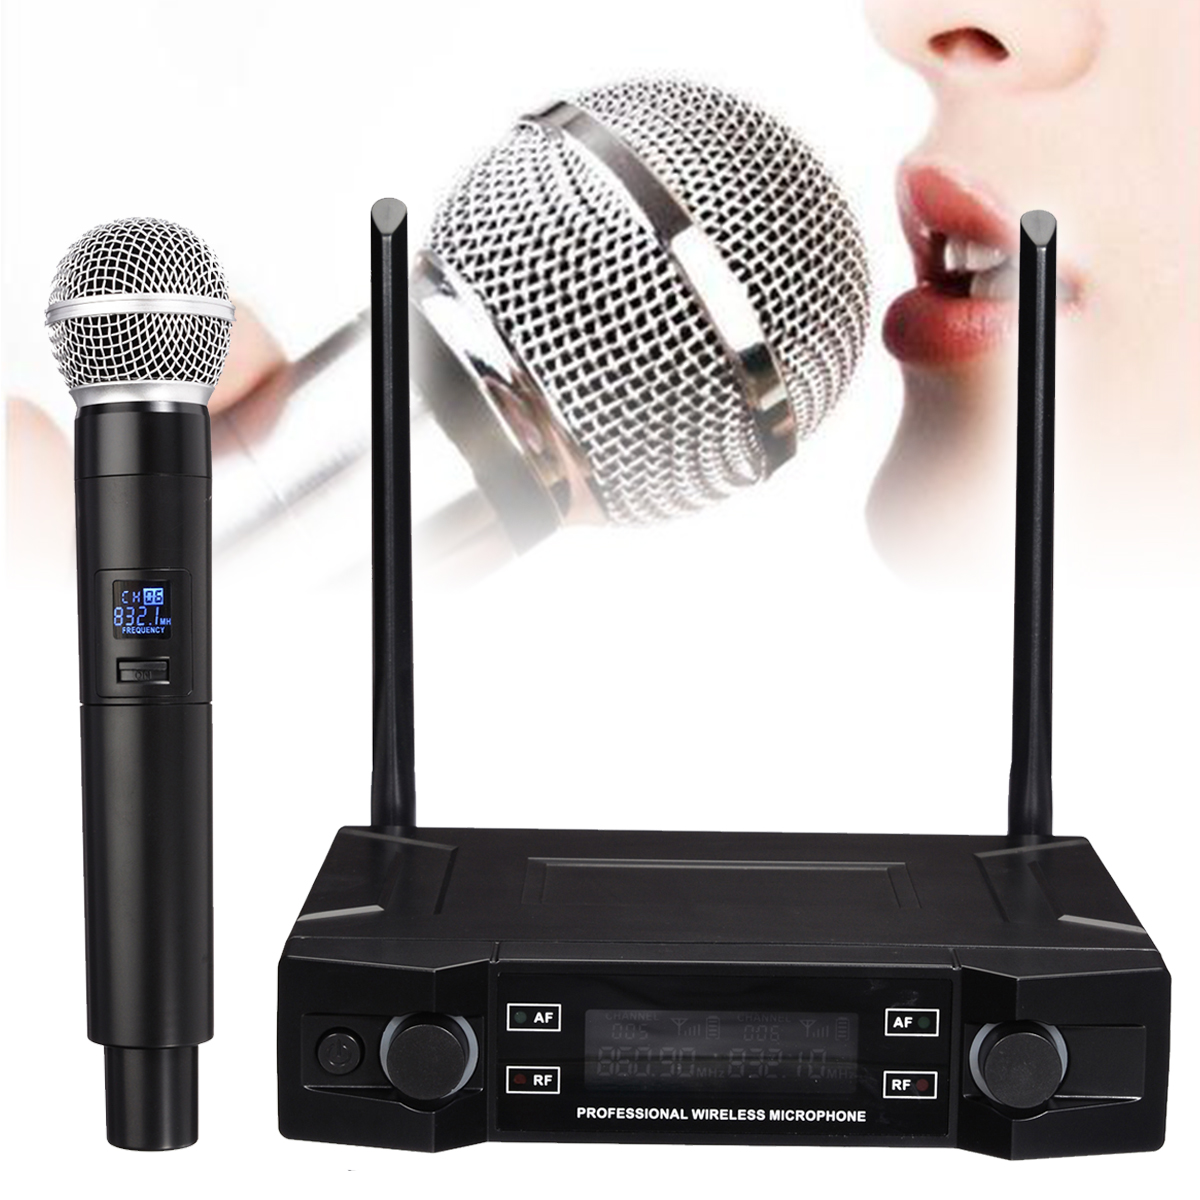 Wireless Microphone System 2 Channel Cordless Handheld Mic Receiver Microphones Karaoke for Home Party Stage Mic Speakers